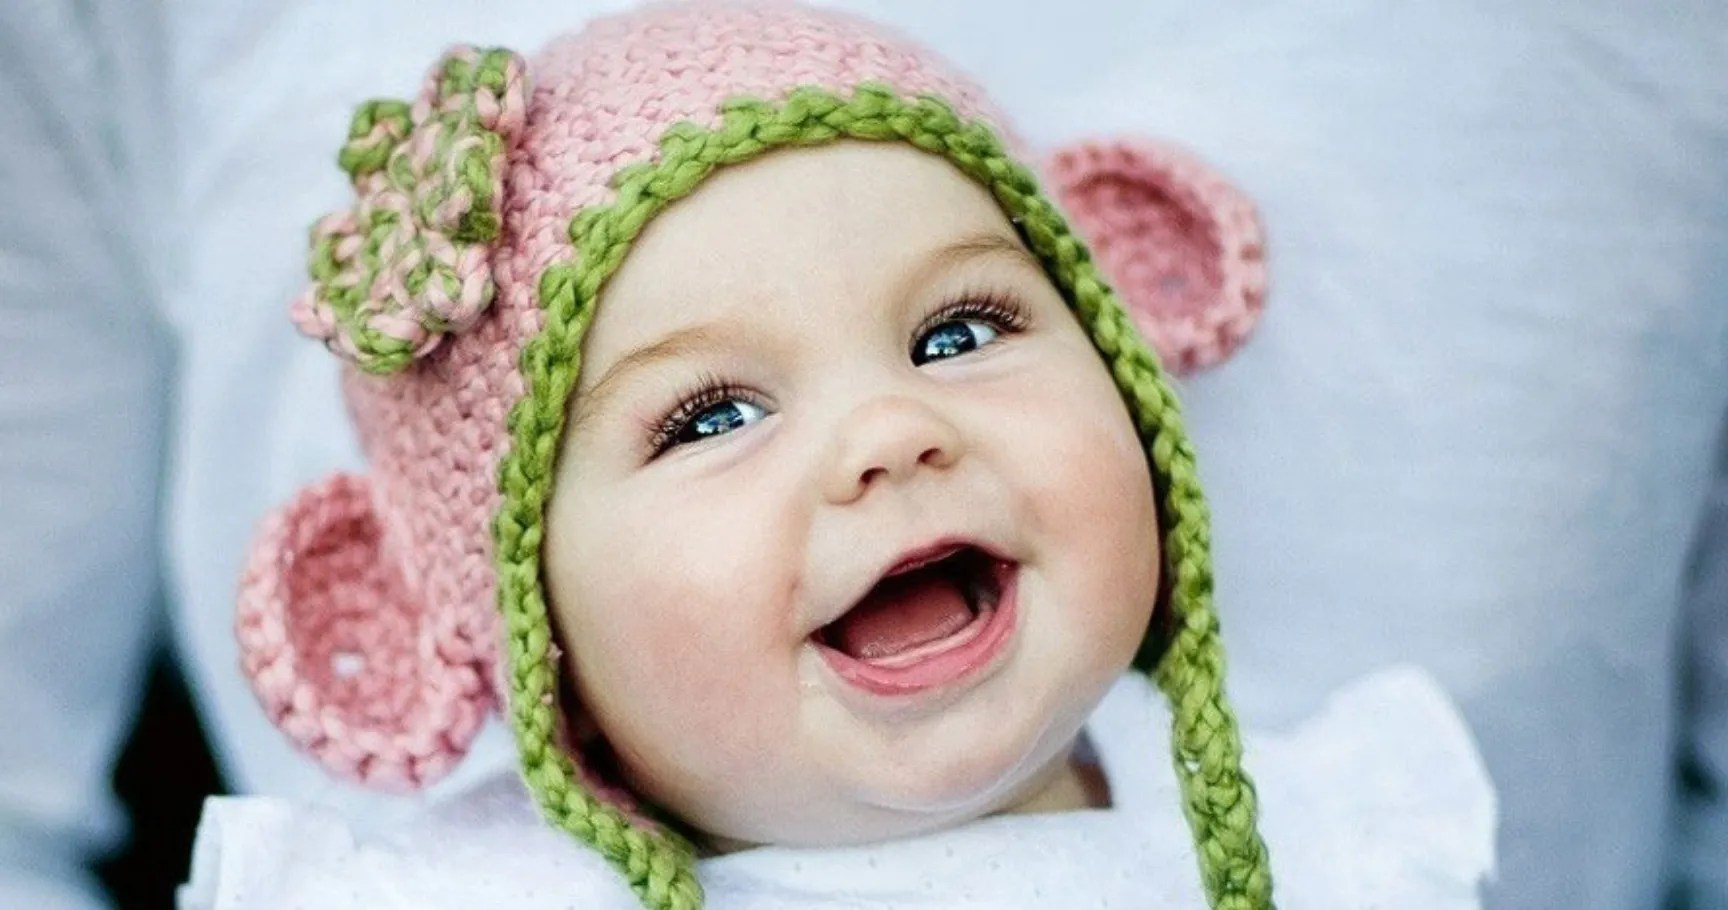 20 rare but super cute baby names moms won't be able to resist